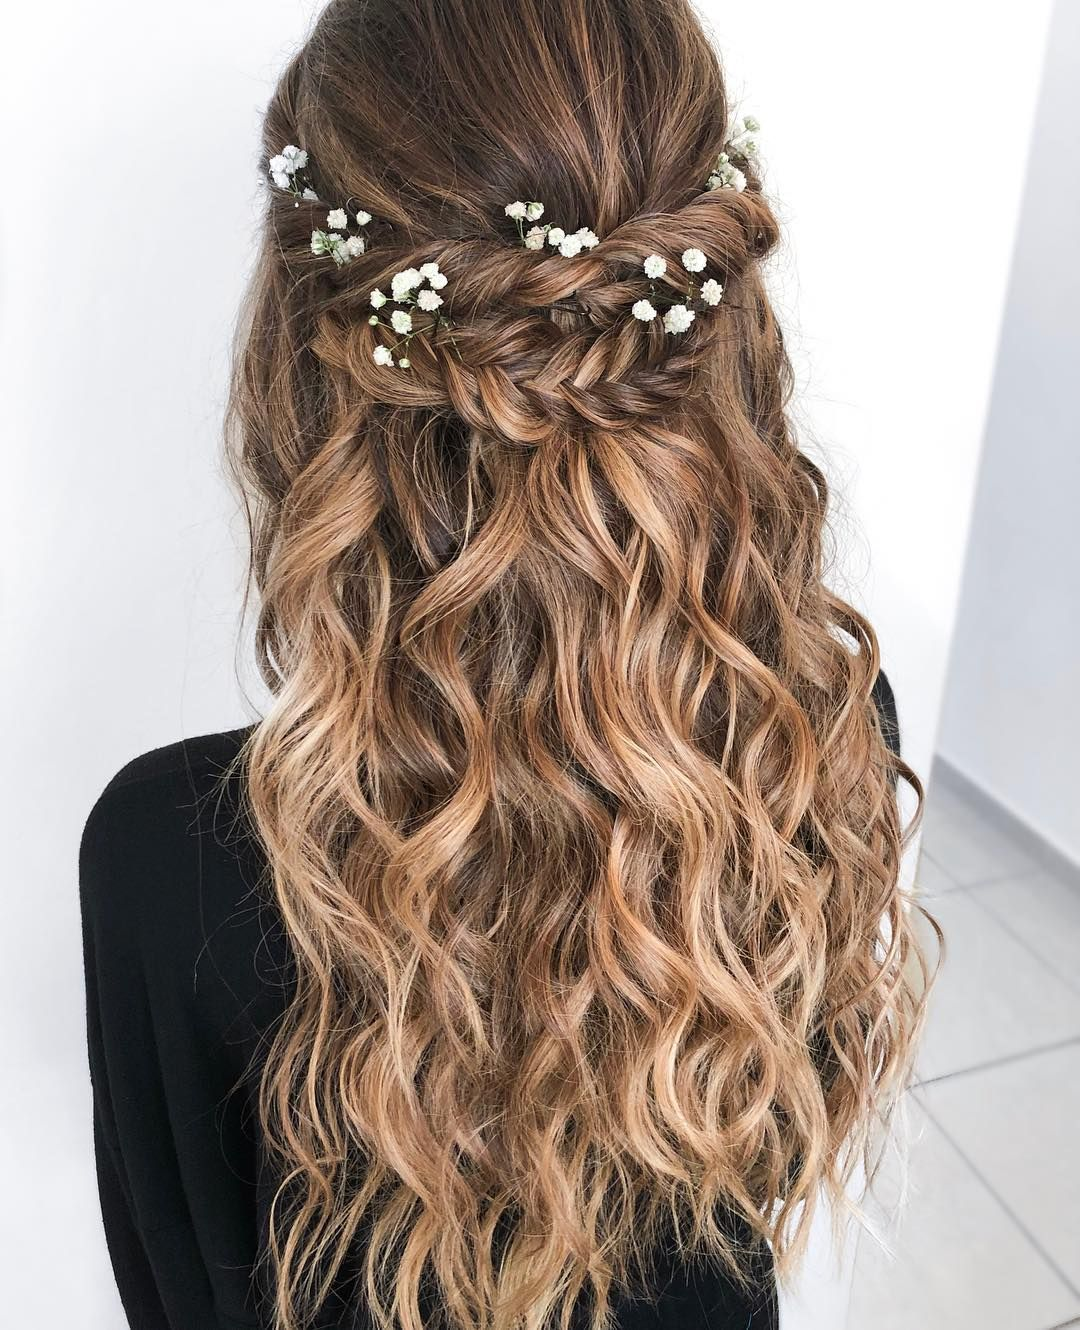 Boho Chic Wedding Hair Style For Long Hair With Flowers Wedding